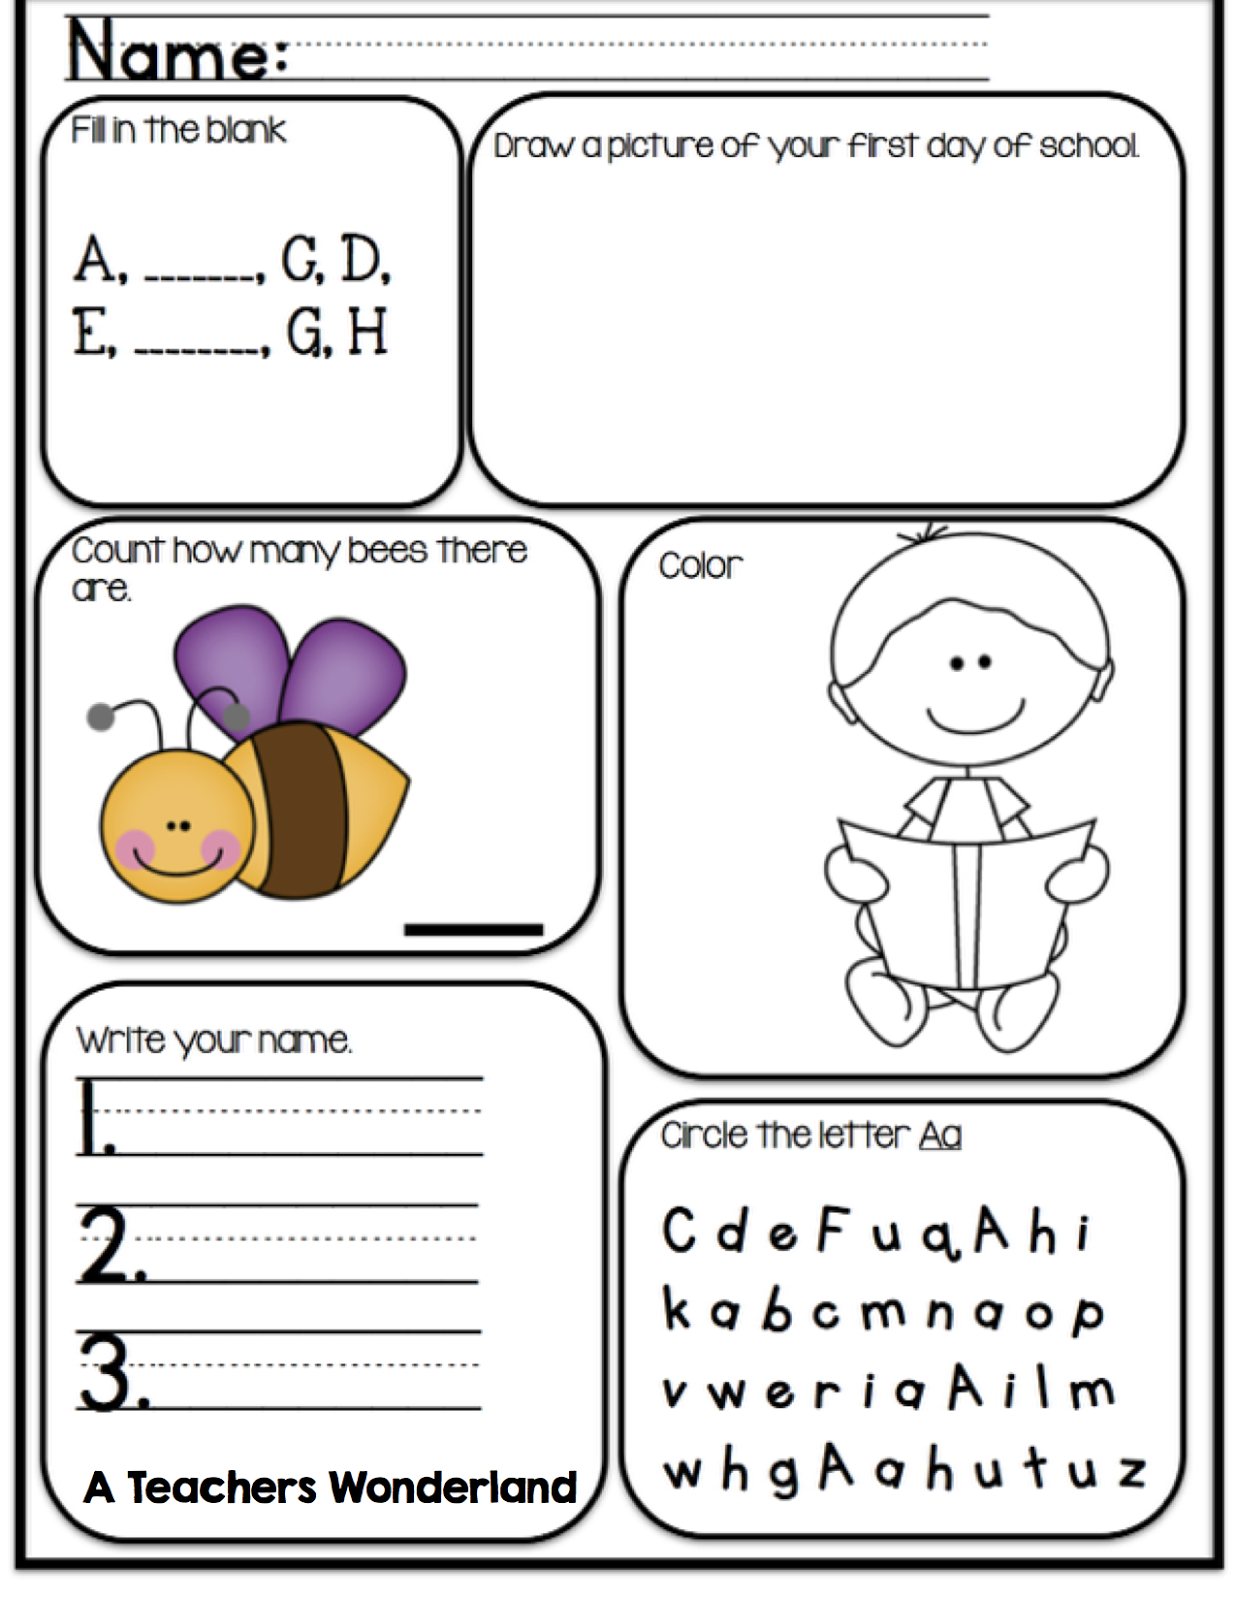 Free Kindergarten Morning Work Worksheets